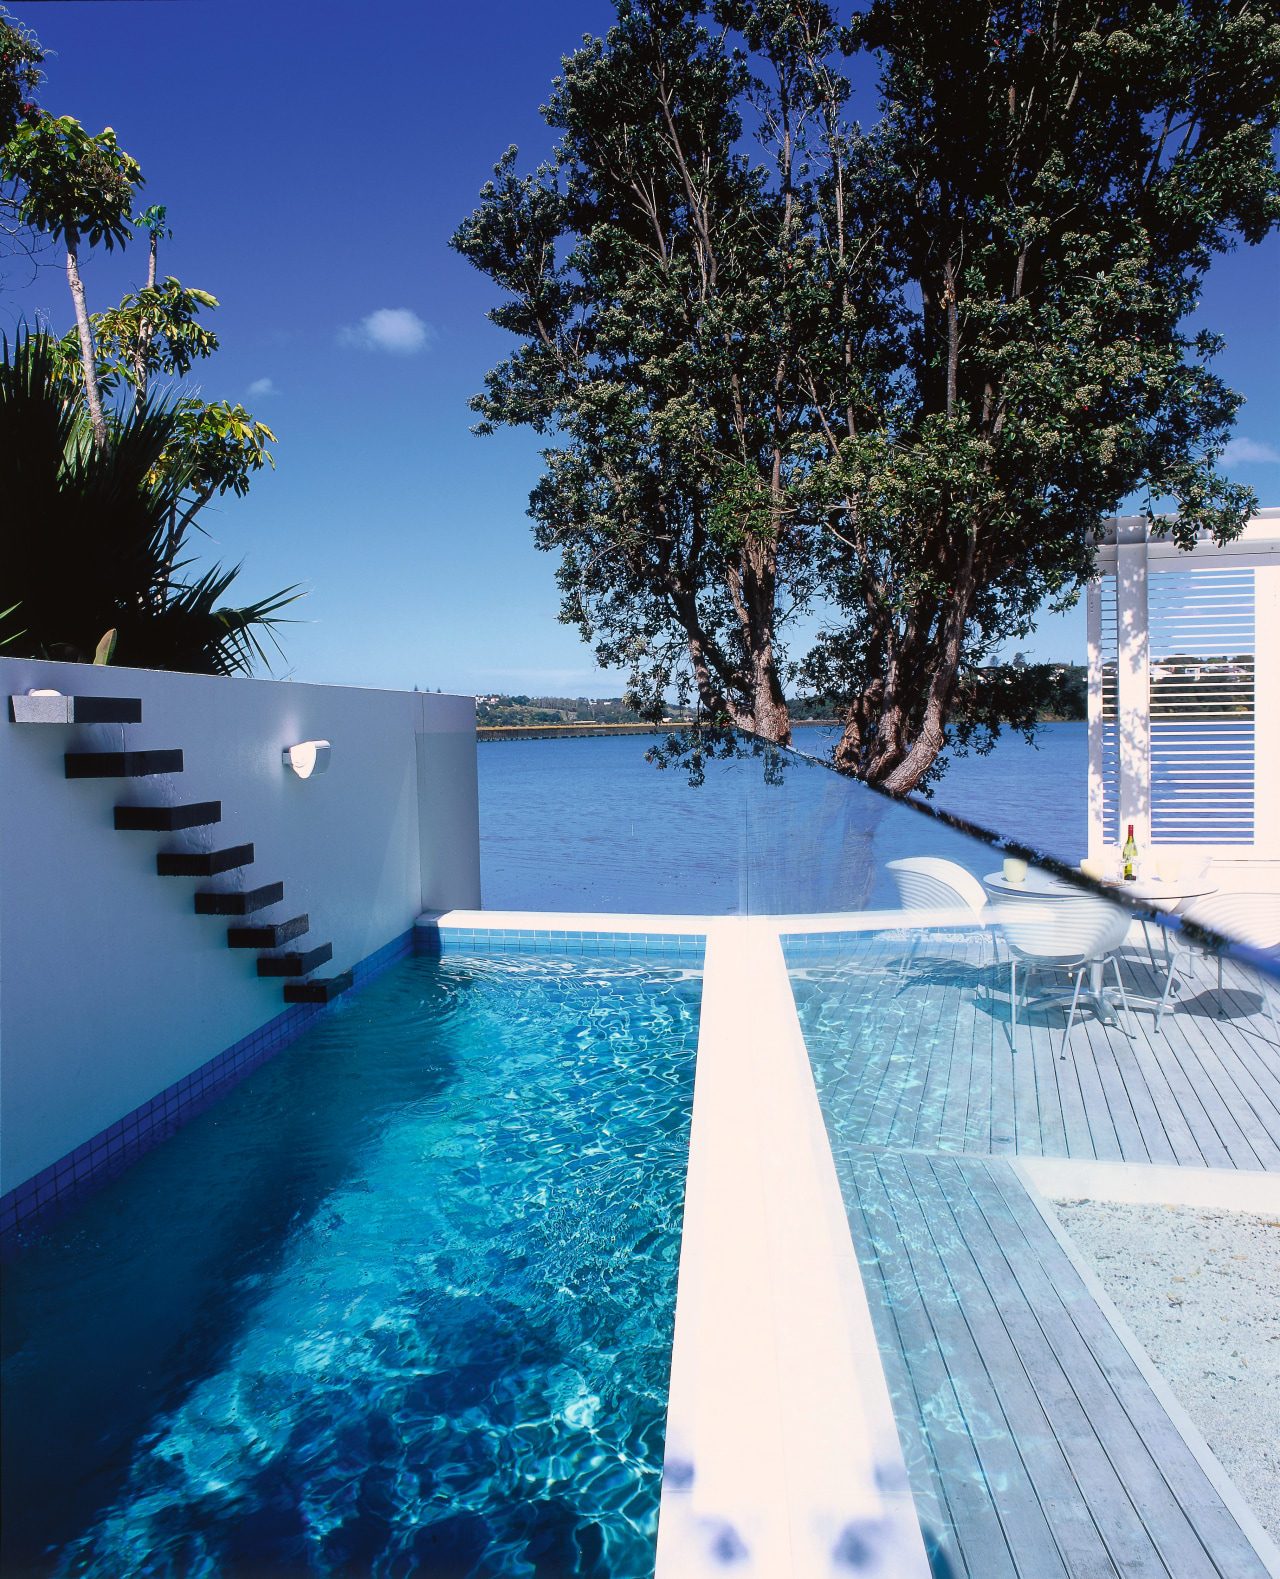 View of long blue pool with white surrounds, architecture, condominium, daytime, estate, home, house, leisure, property, real estate, reflection, resort, sky, swimming pool, tree, water, blue